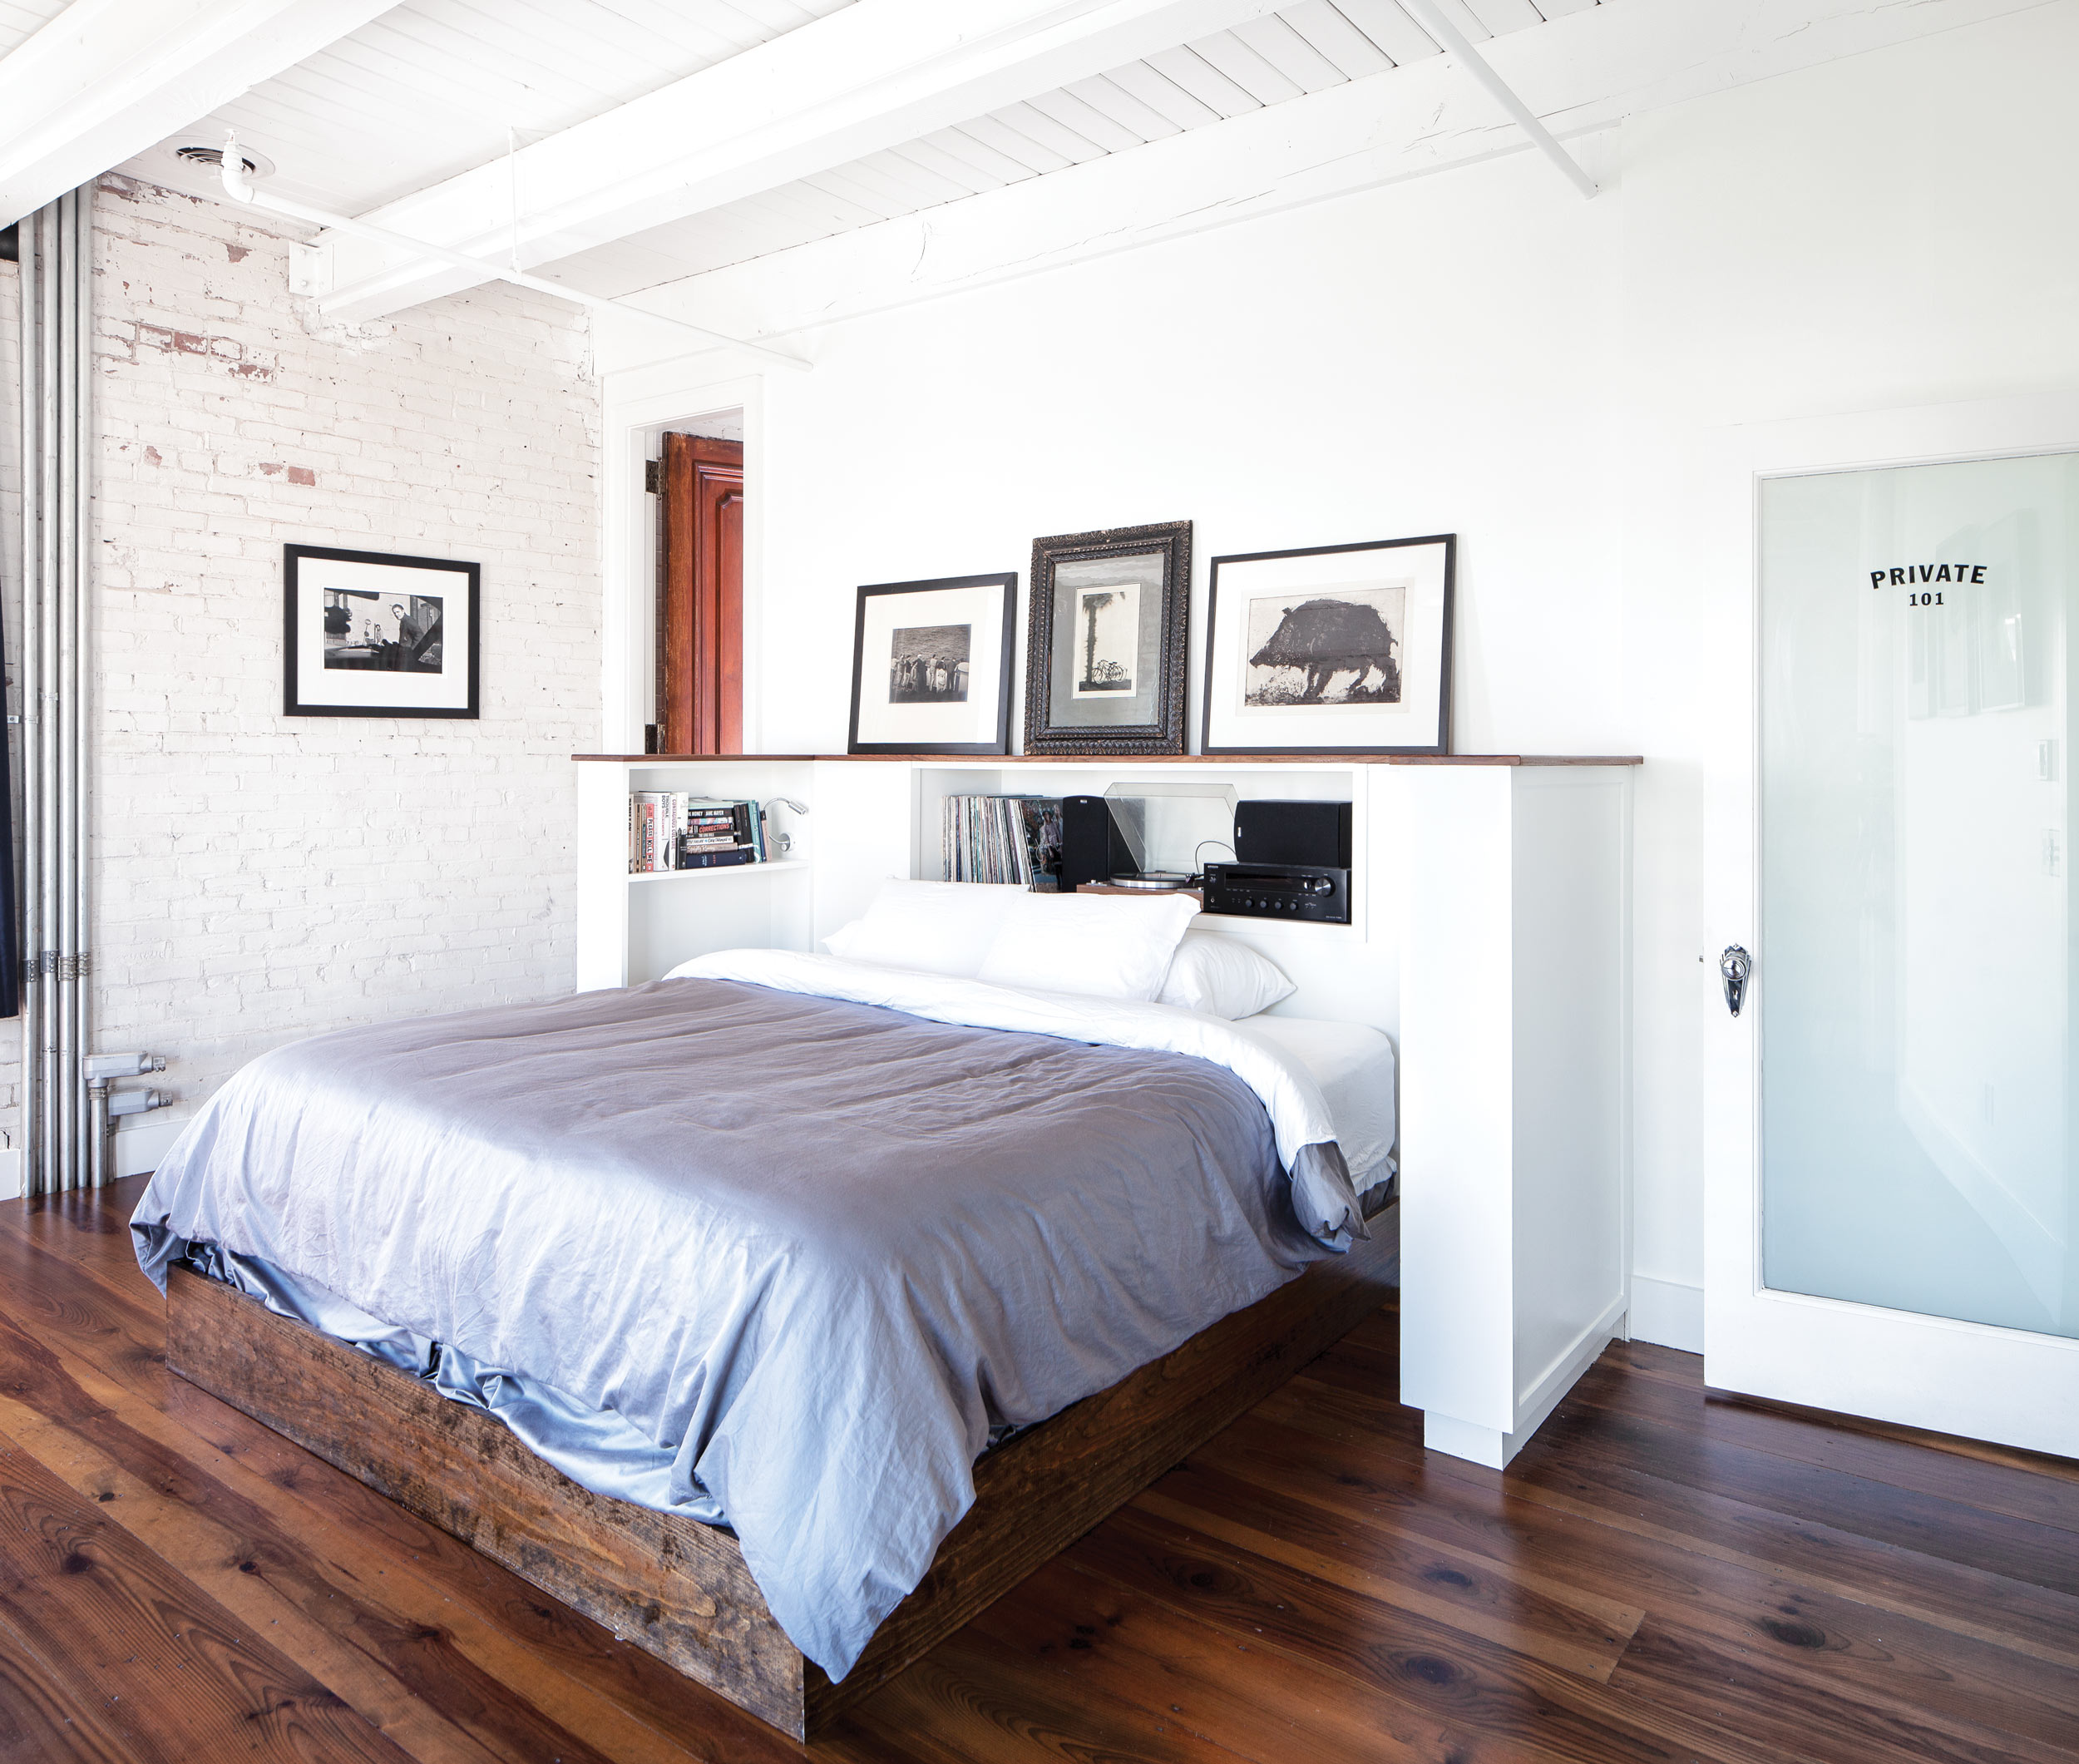 Keon told cabinetmaker Paul Lewin that he wanted to listen to music in bed, so Lewin built this bed nook to house his stereo and serve as a record cabinet while also displaying art like the etching of a pig by Tom Cornell and a 1923 William H. Bettle silver gelatin print of a luxury liner.